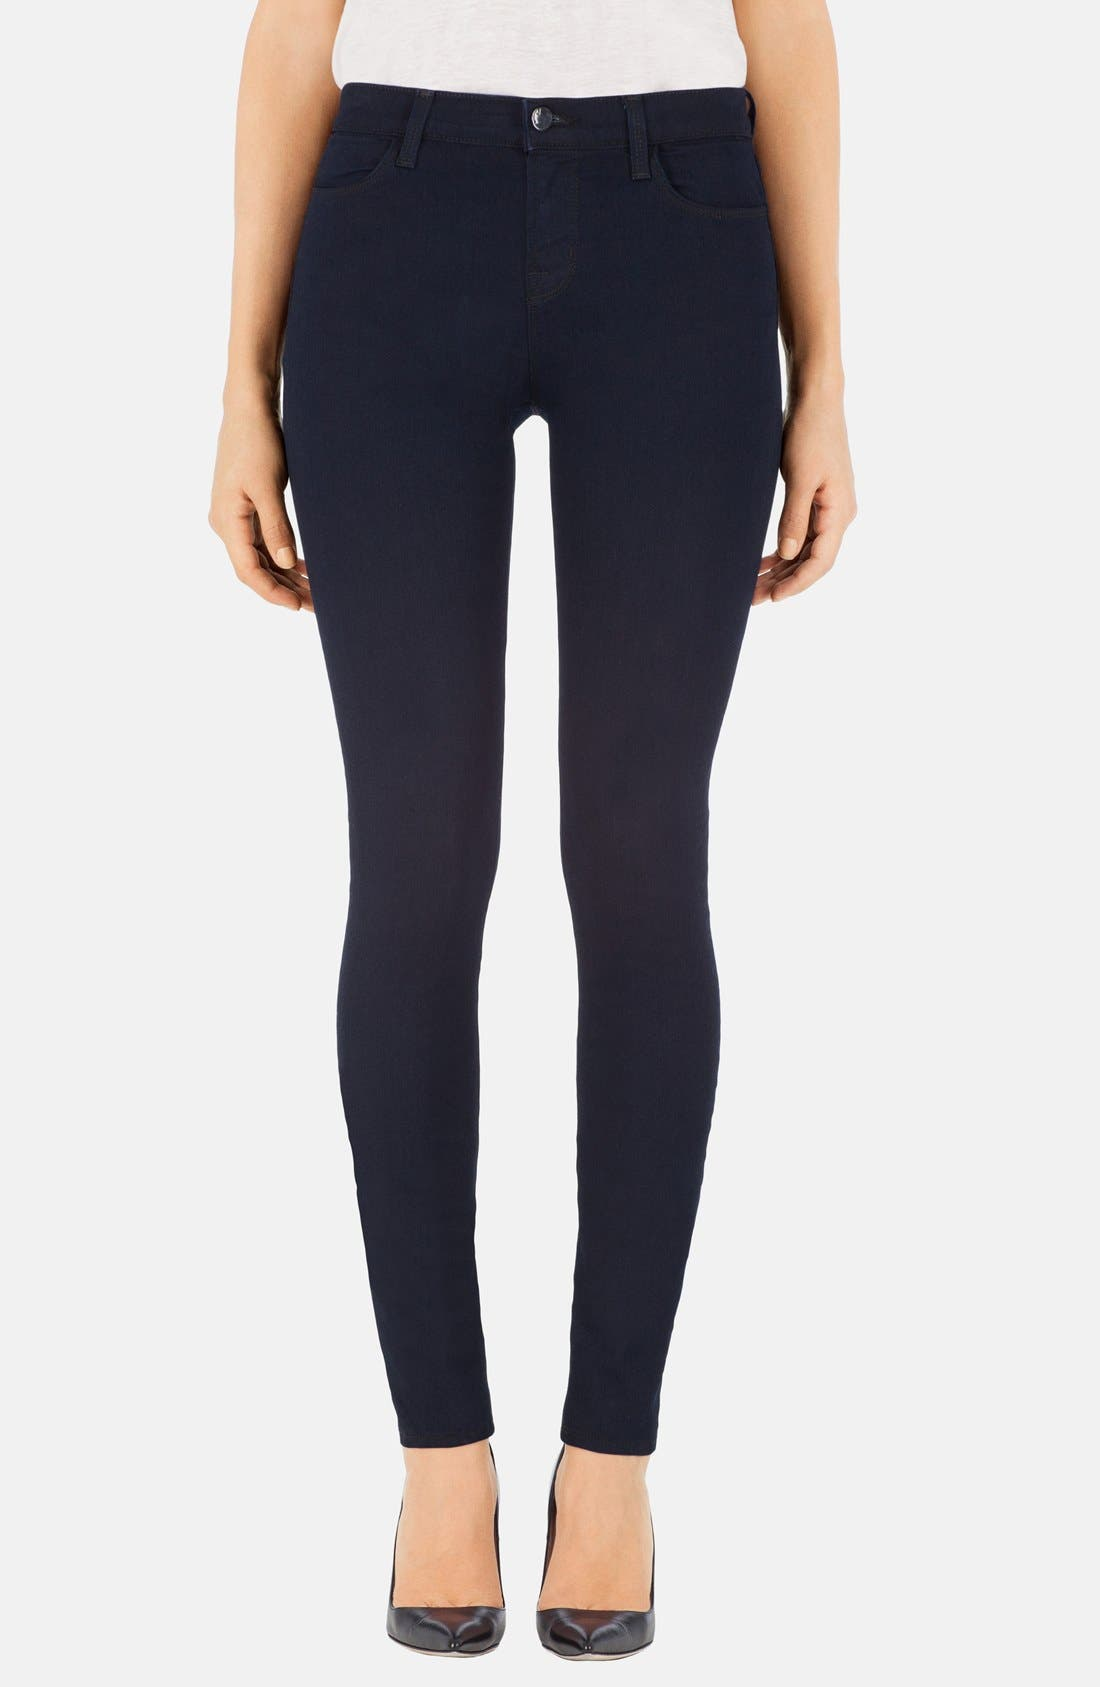 Alternate Image 1 Selected - J Brand 'Maria' High Rise Skinny Jeans (Lapis)